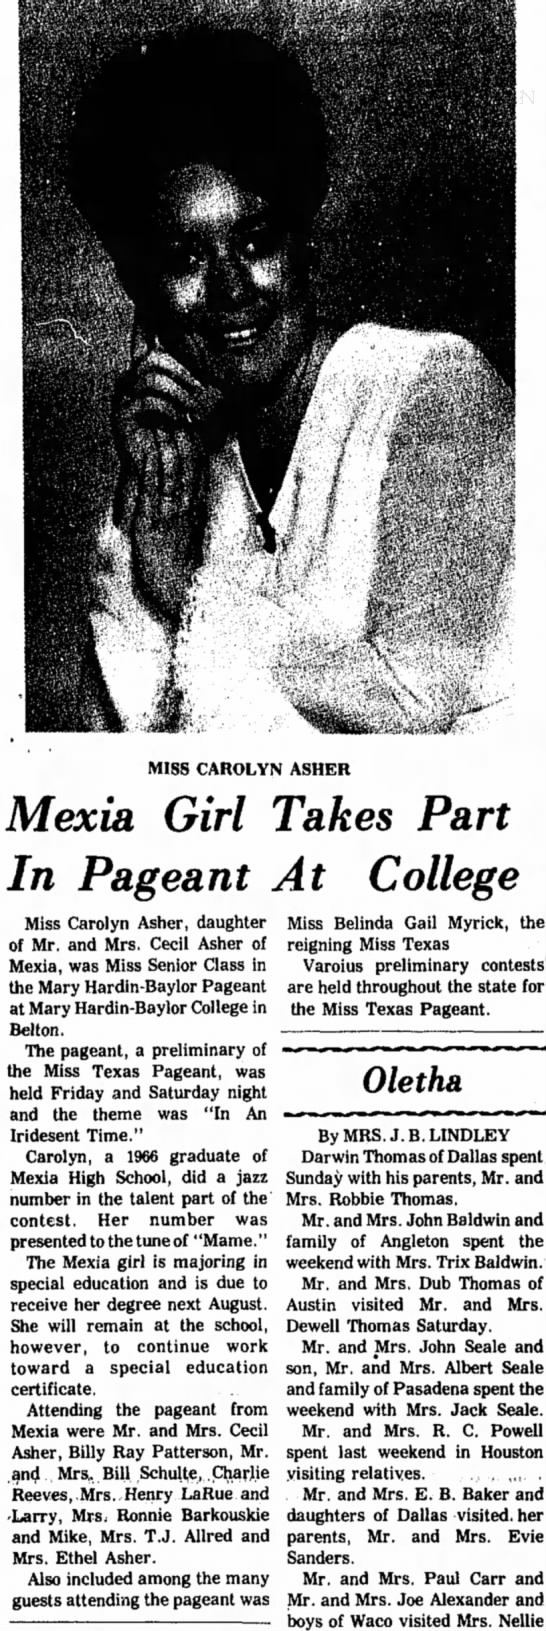 - MISS CAROLYN ASHER Mexia Girl Takes Part In...